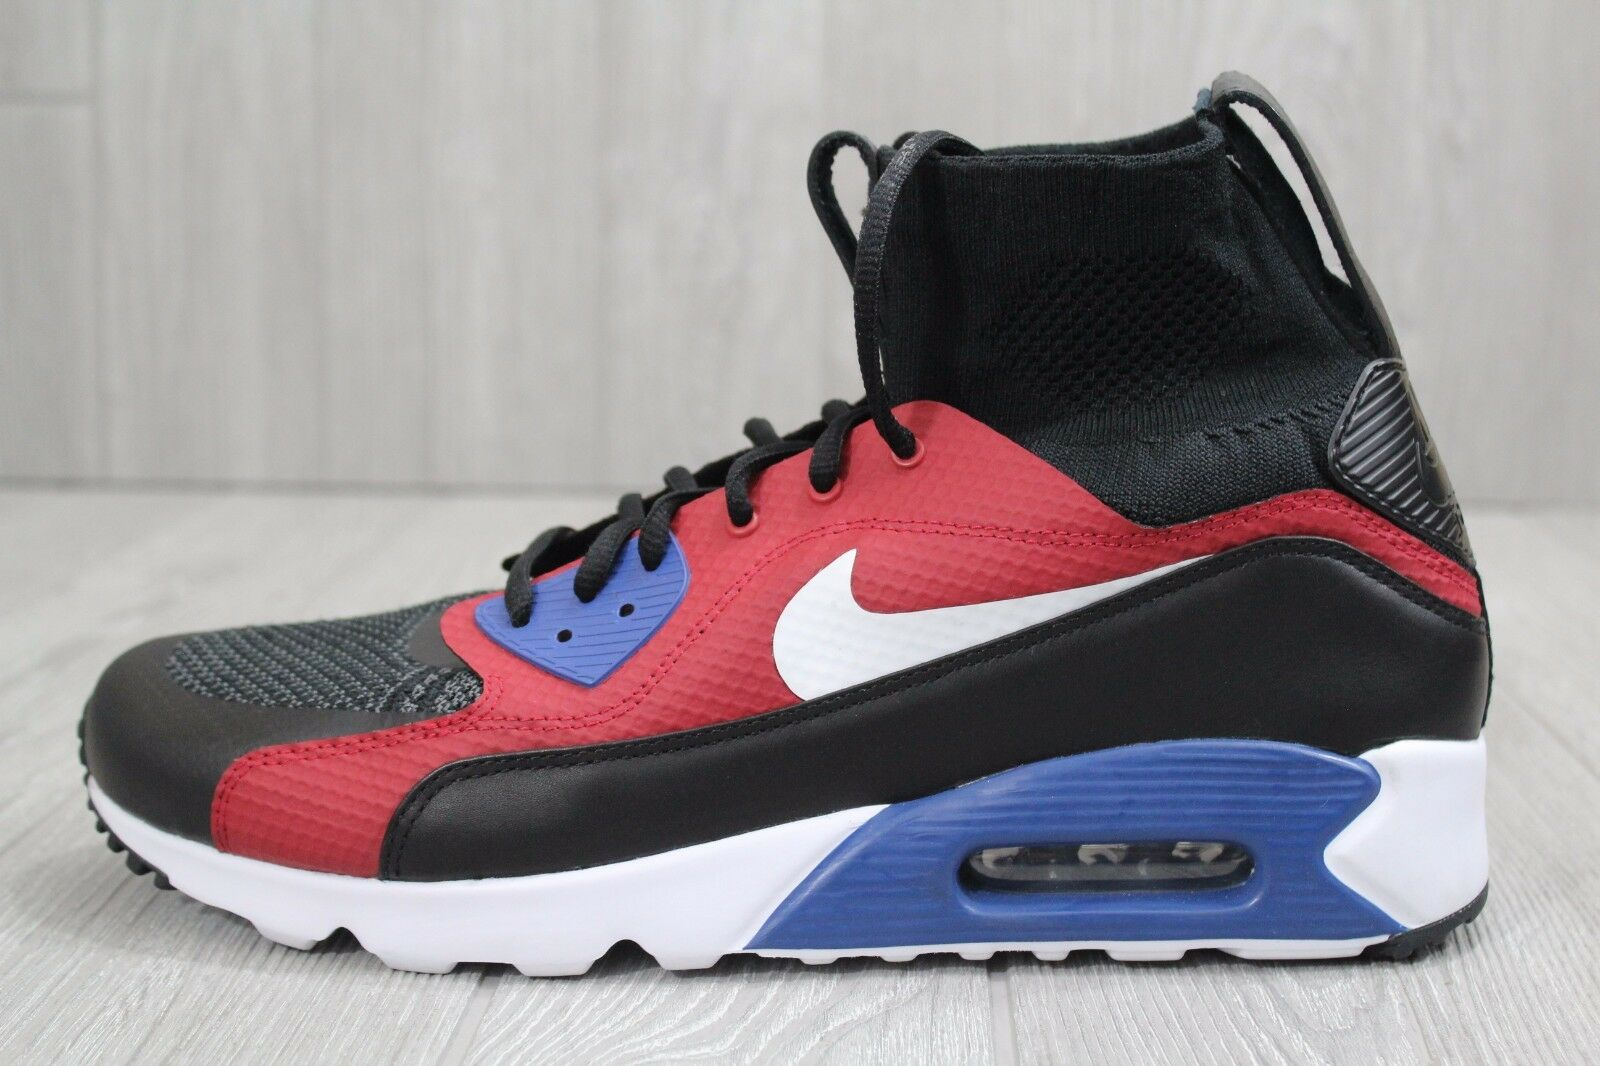 22 New Mens Nike Air Max 90 Ultra Superfly DS Black Shoes Comfortable Seasonal price cuts, discount benefits